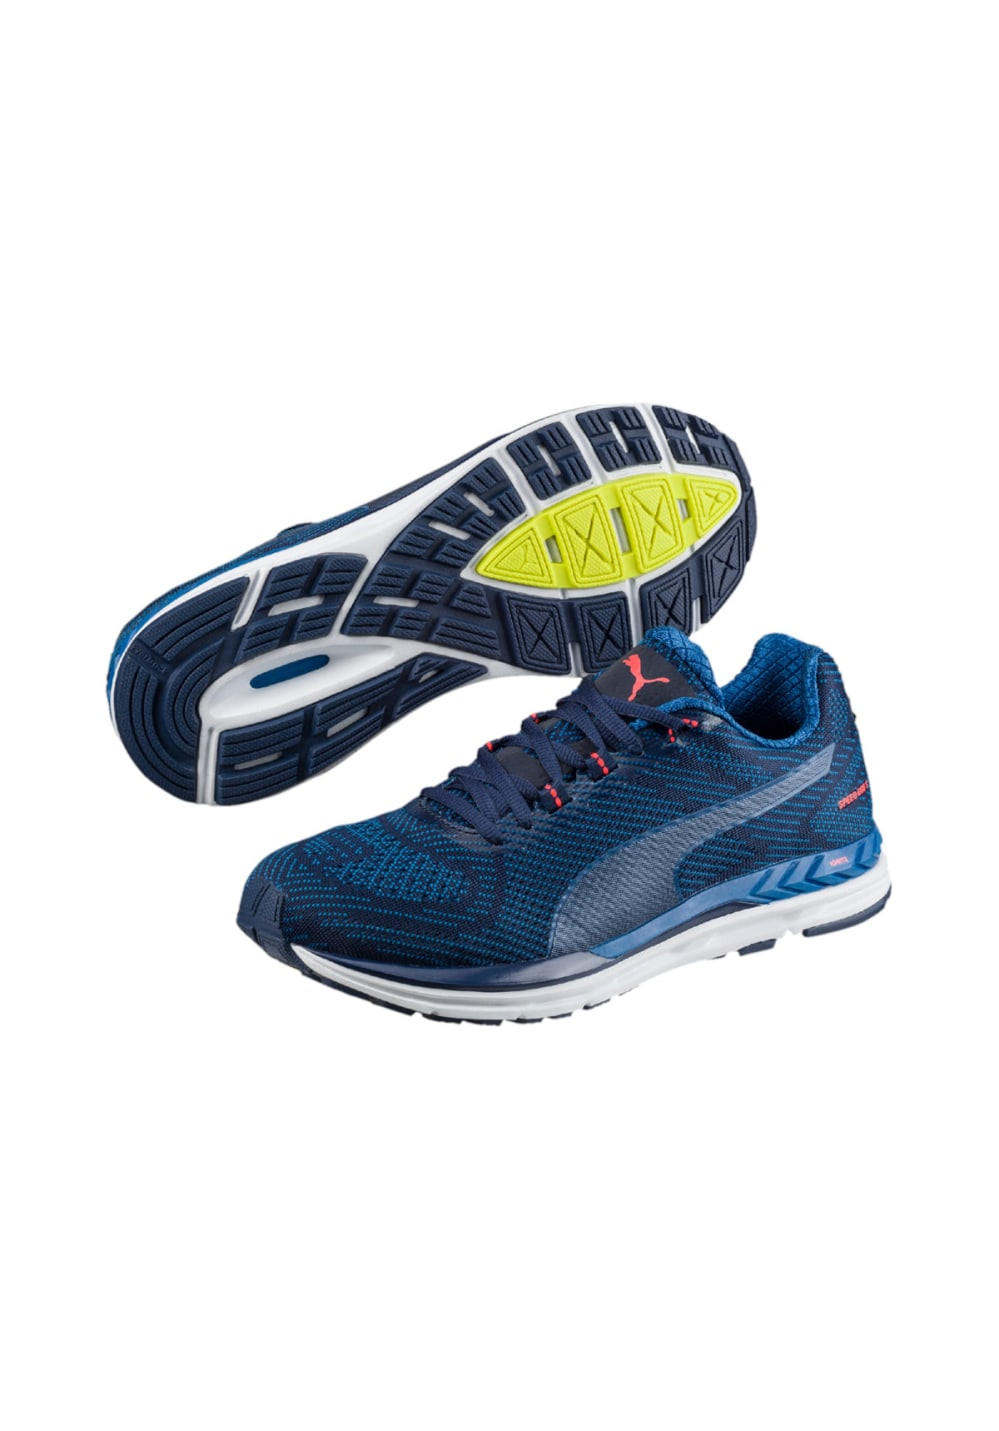 4702a38be182c4 Home · Shop · Puma Speed 600 S IGNITE - Running shoes for Men - Blue. Back  to Overview. -45%